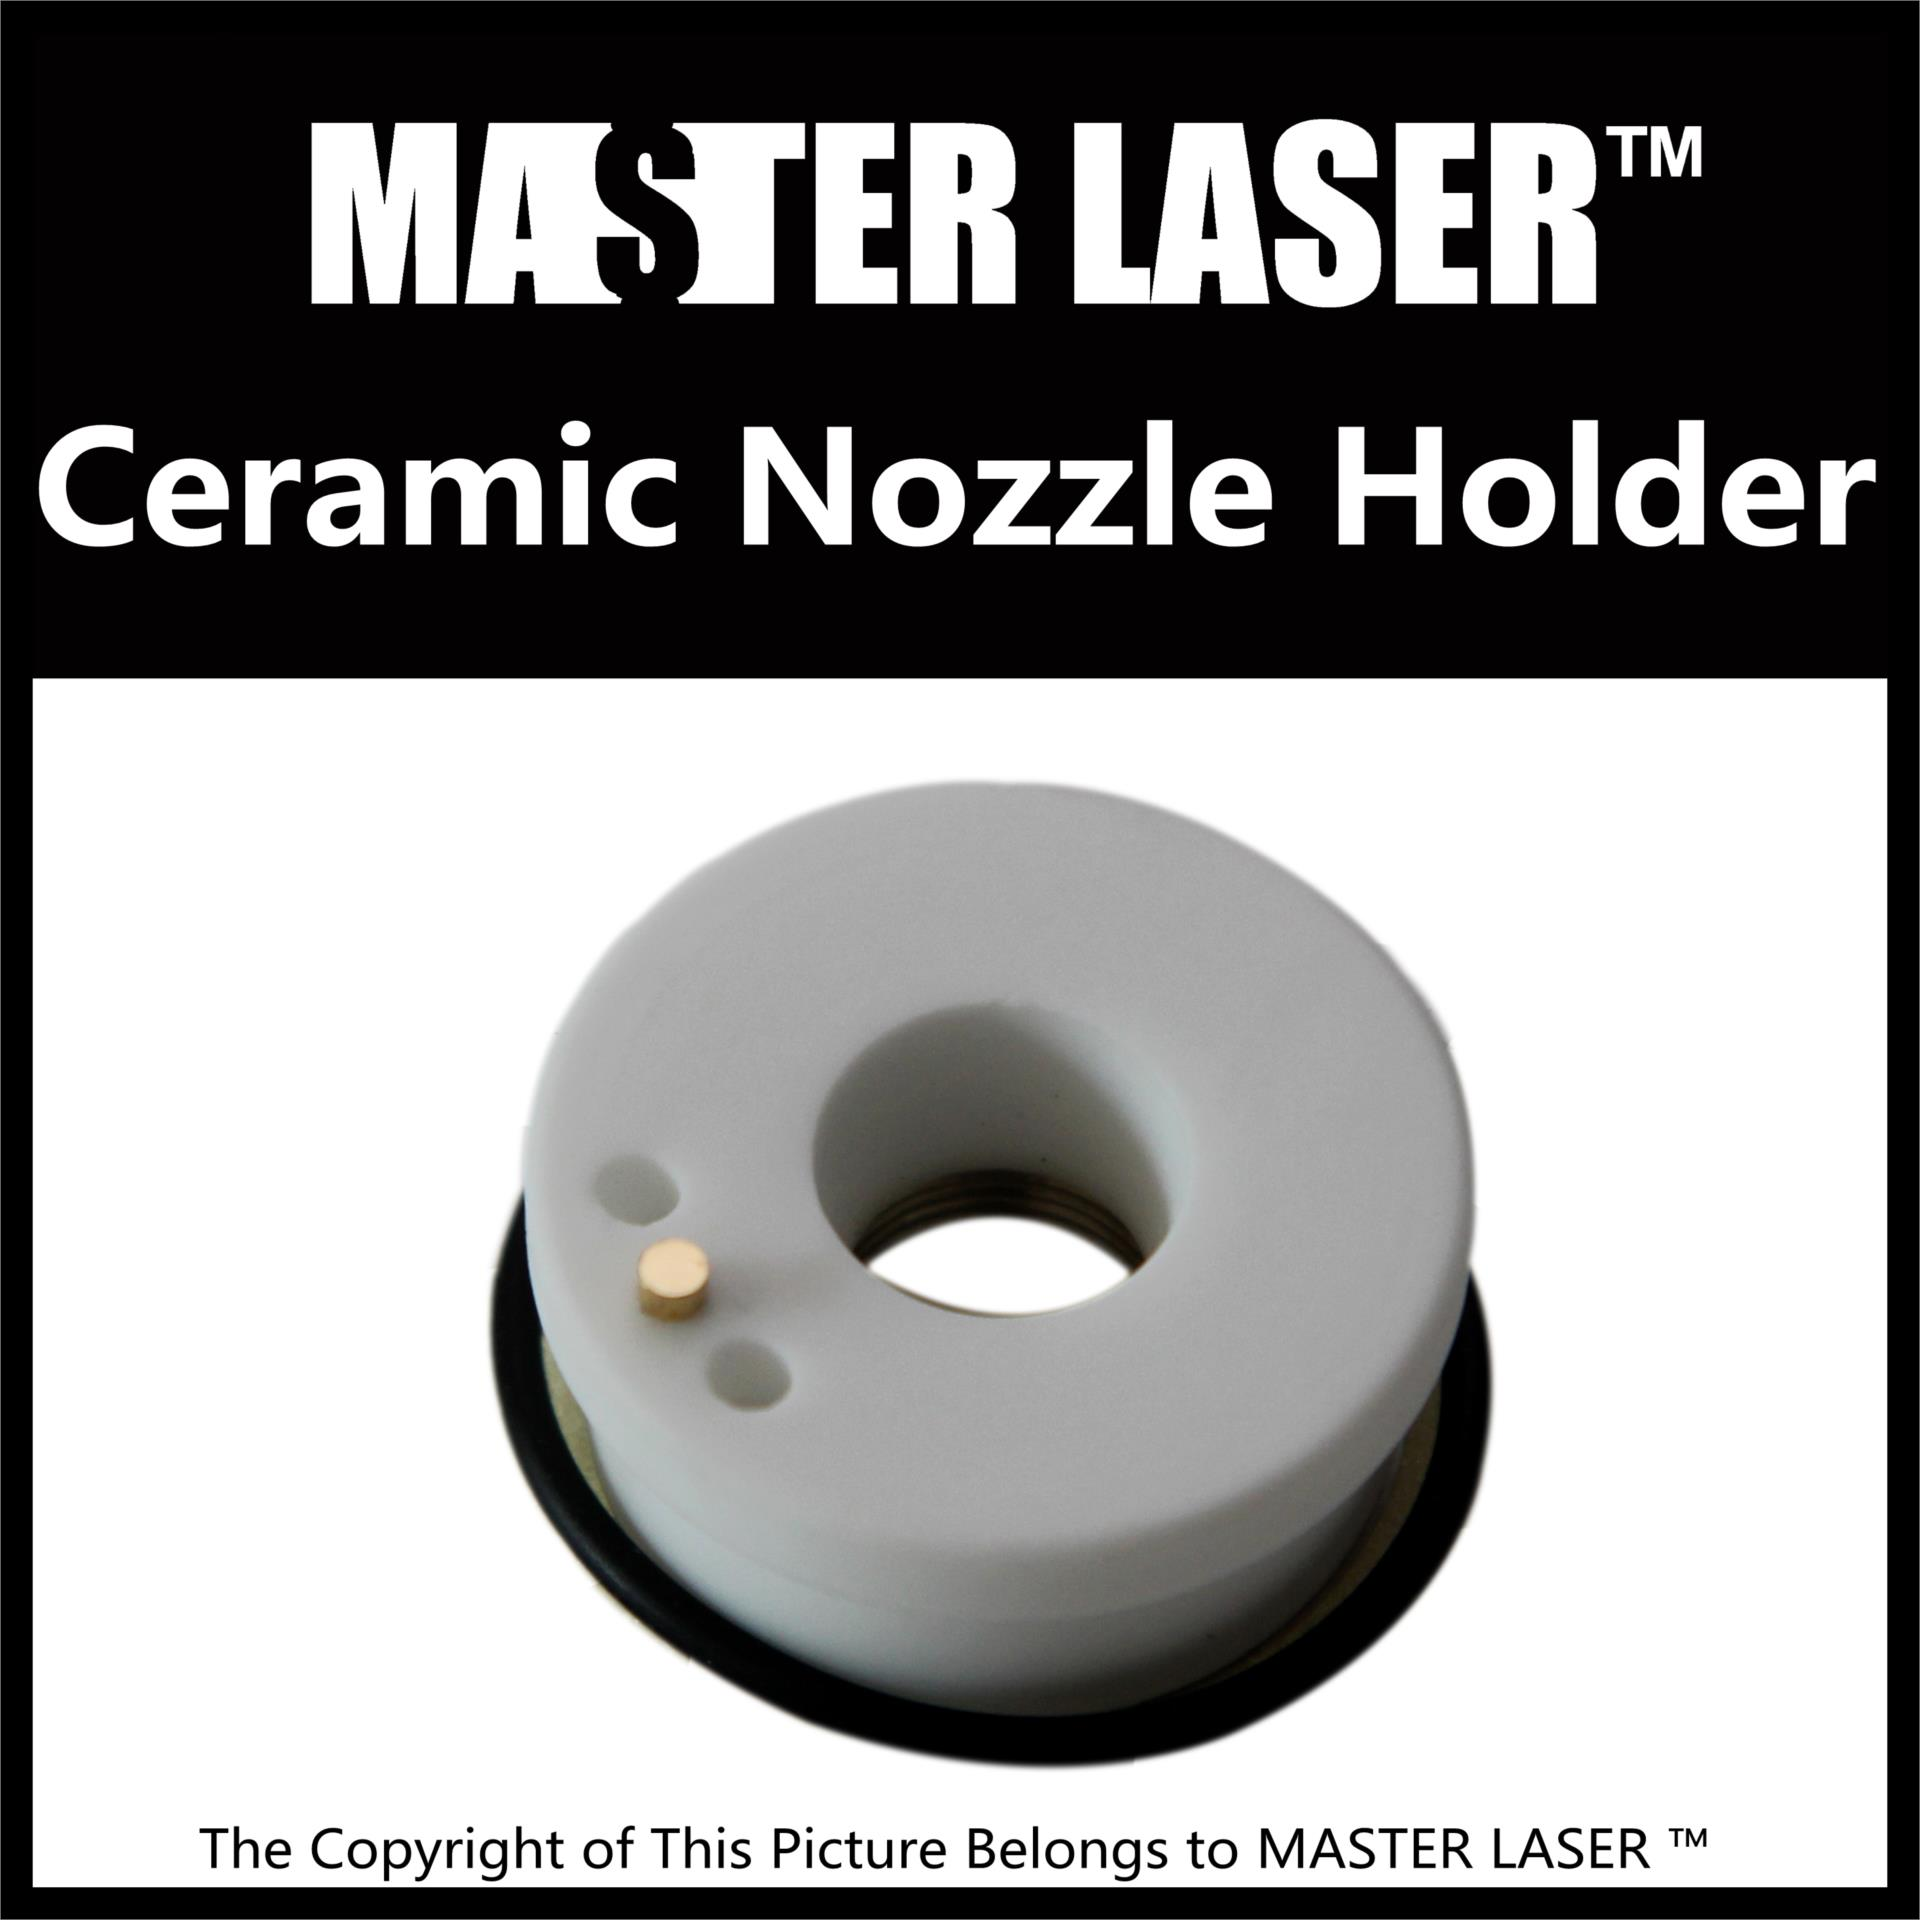 Master Laser Precitec Ceramic Laser Nozzle Holder for High Power Lasermech Fiber Cutting Head Machine KT B2 CON P0571-1051-00001  laser precitec laser ceramic kt b2 con p0571 1051 00001 for precitec laser cutting head 32mm 28 5mm free shipping